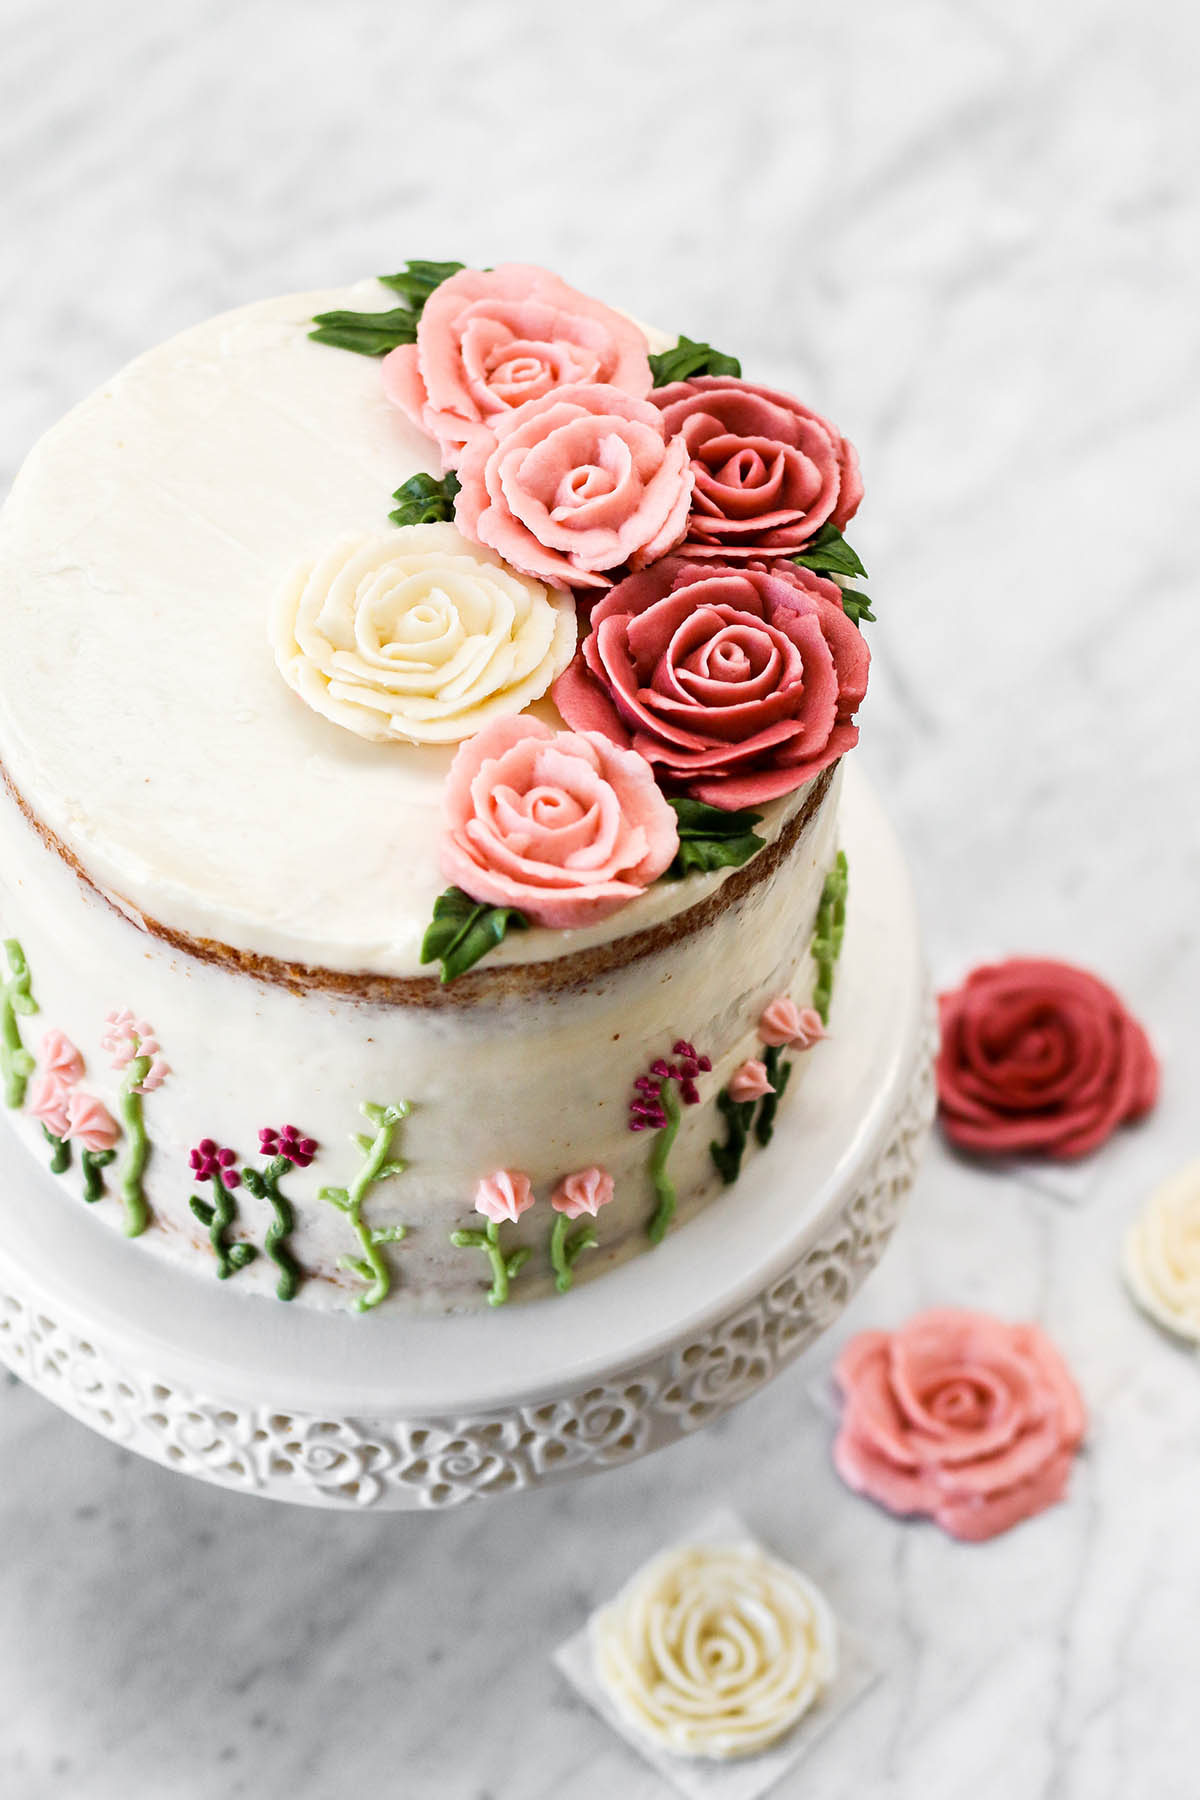 A tall cake on a cake stand with buttercream roses on top and small flowers on the sides.